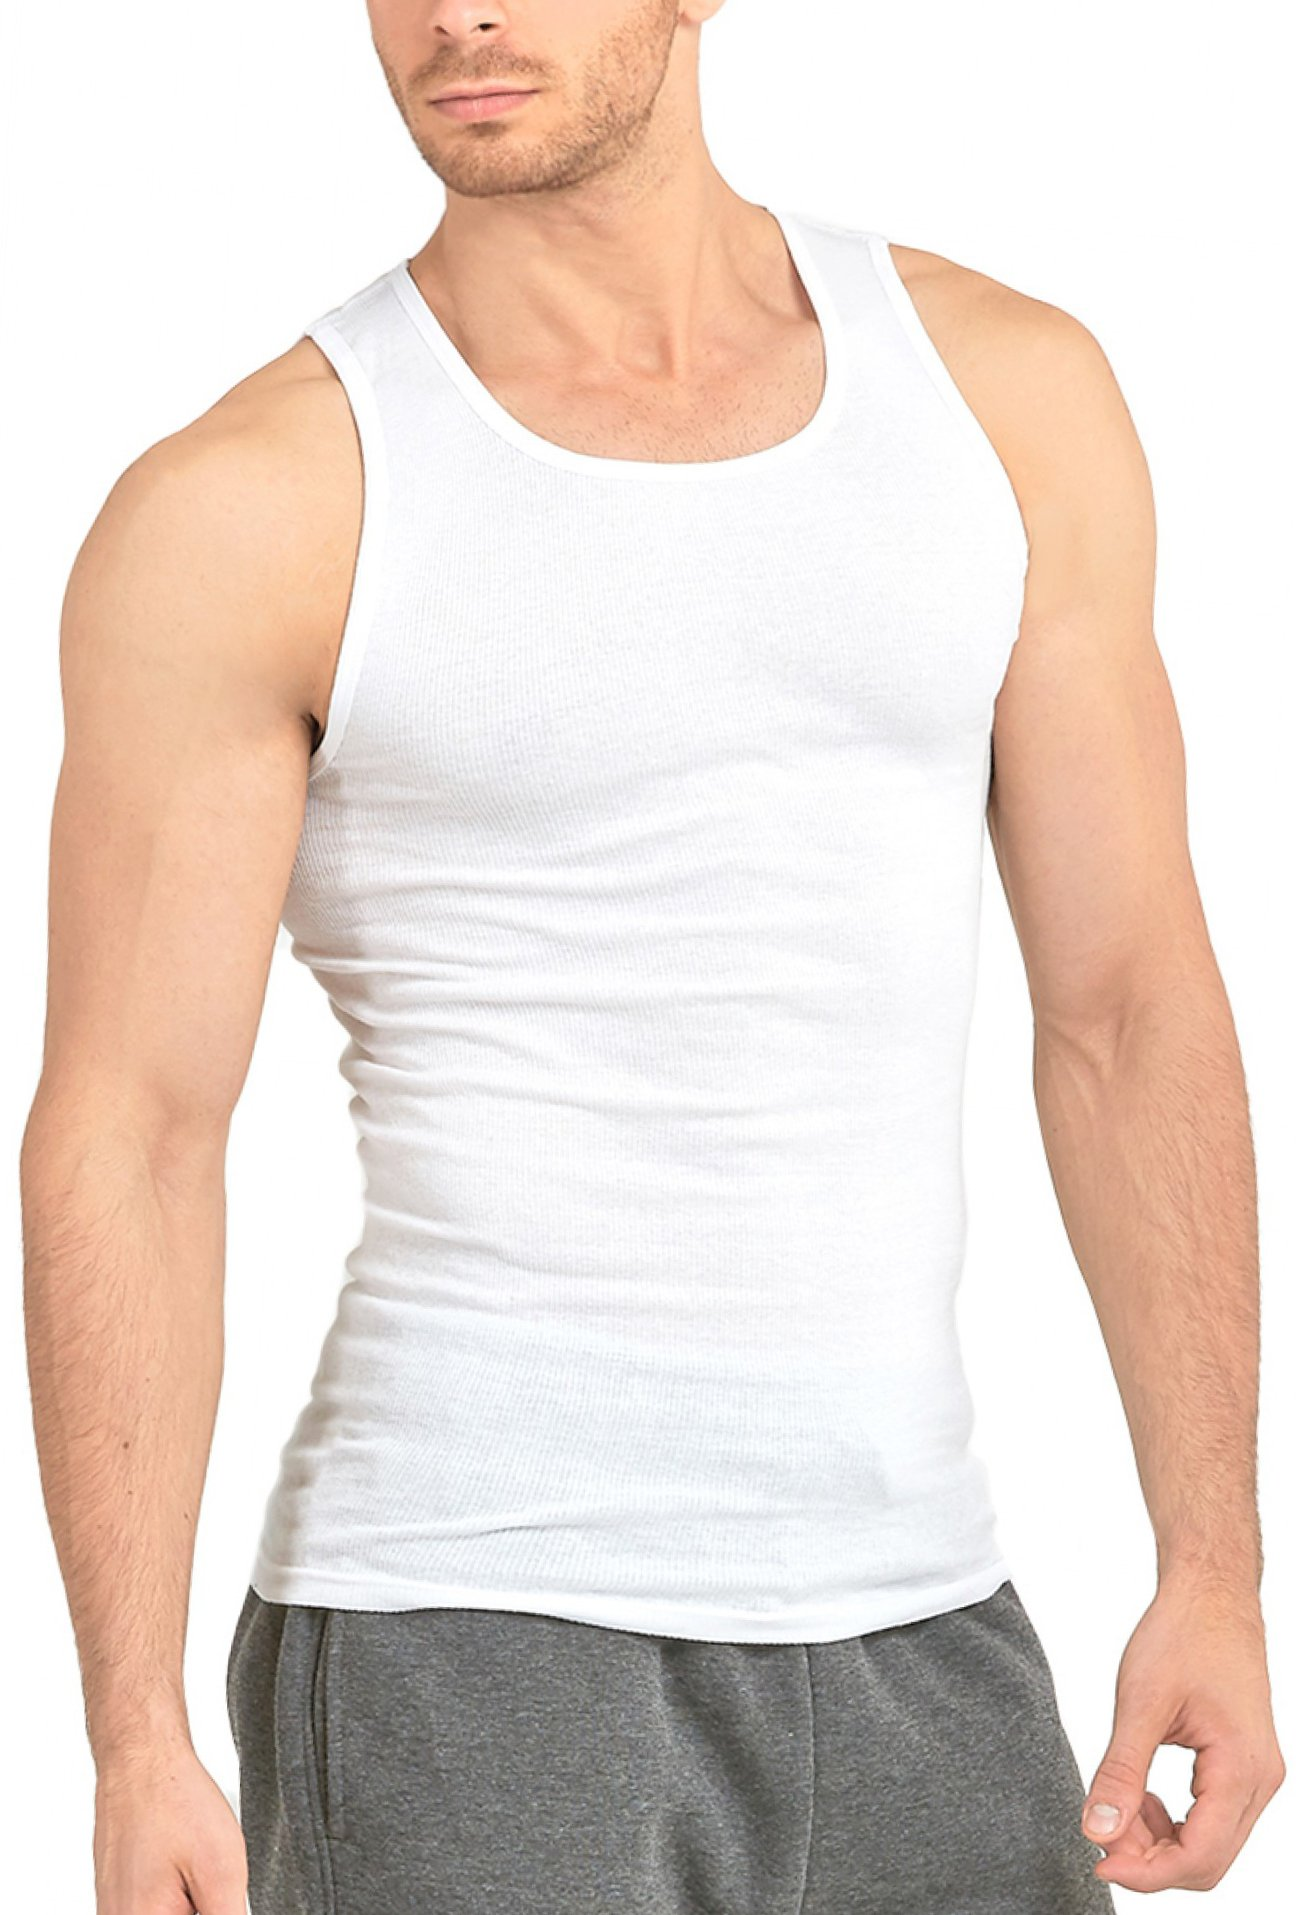 ToBeInStyle Men's Pack of 6 Scoop Neck Sleeveless A-Shirts - White - 3XL